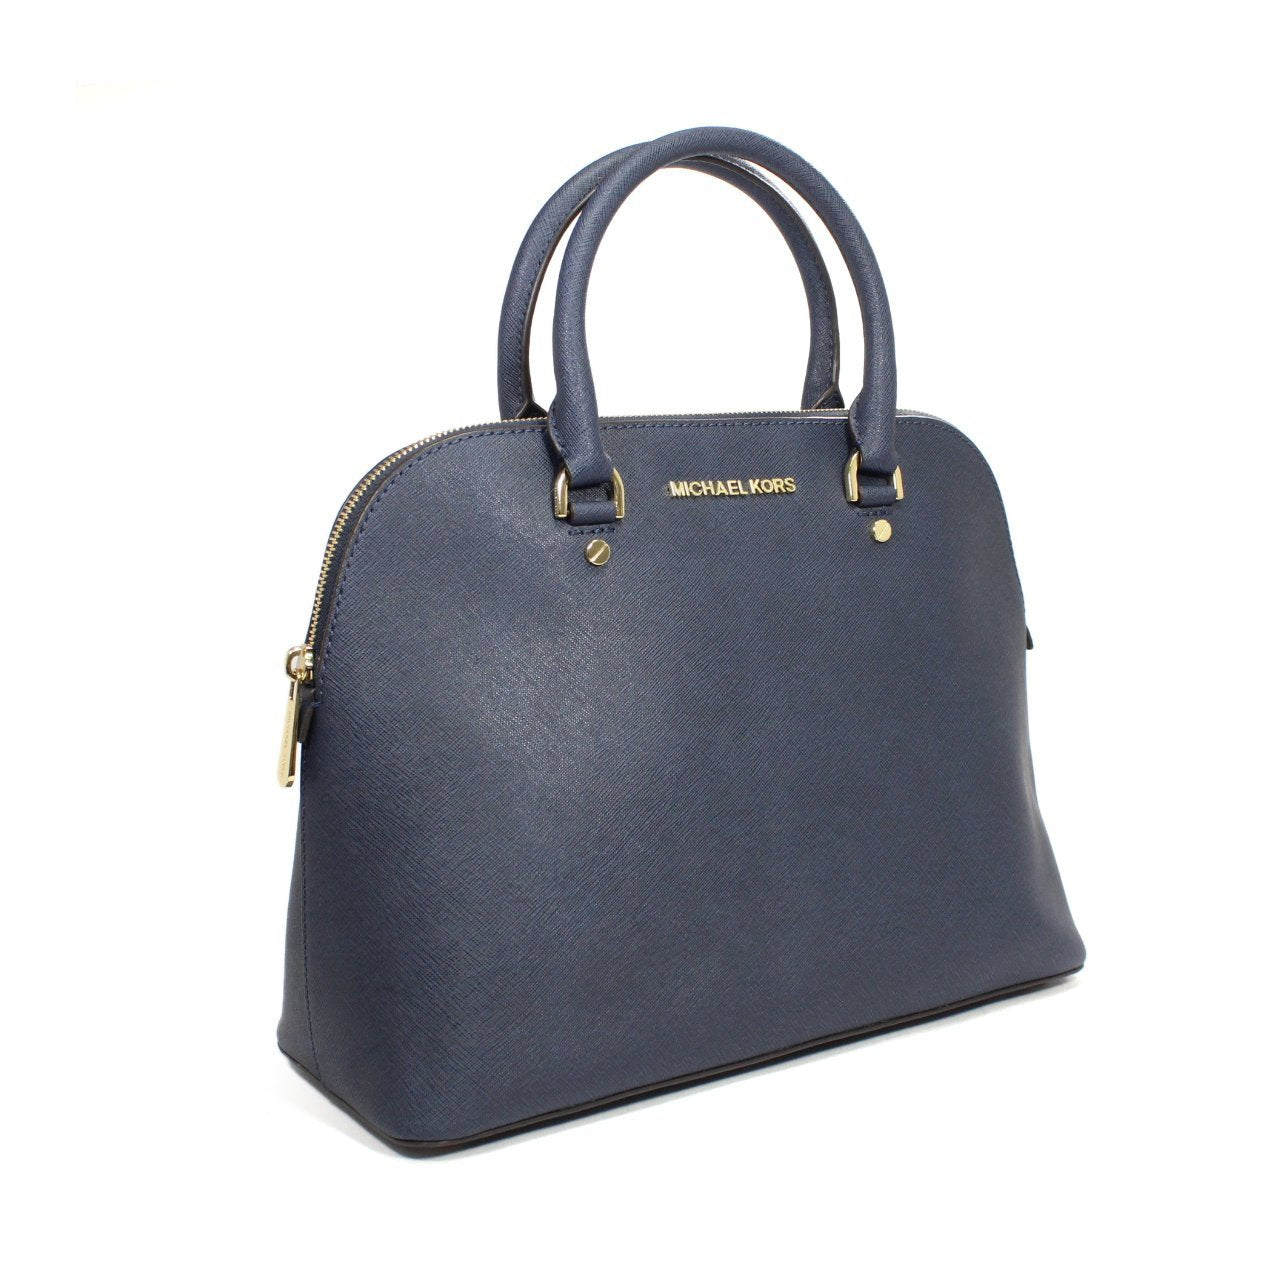 Michael Kors Cindy Dome Navy Satchel Bag